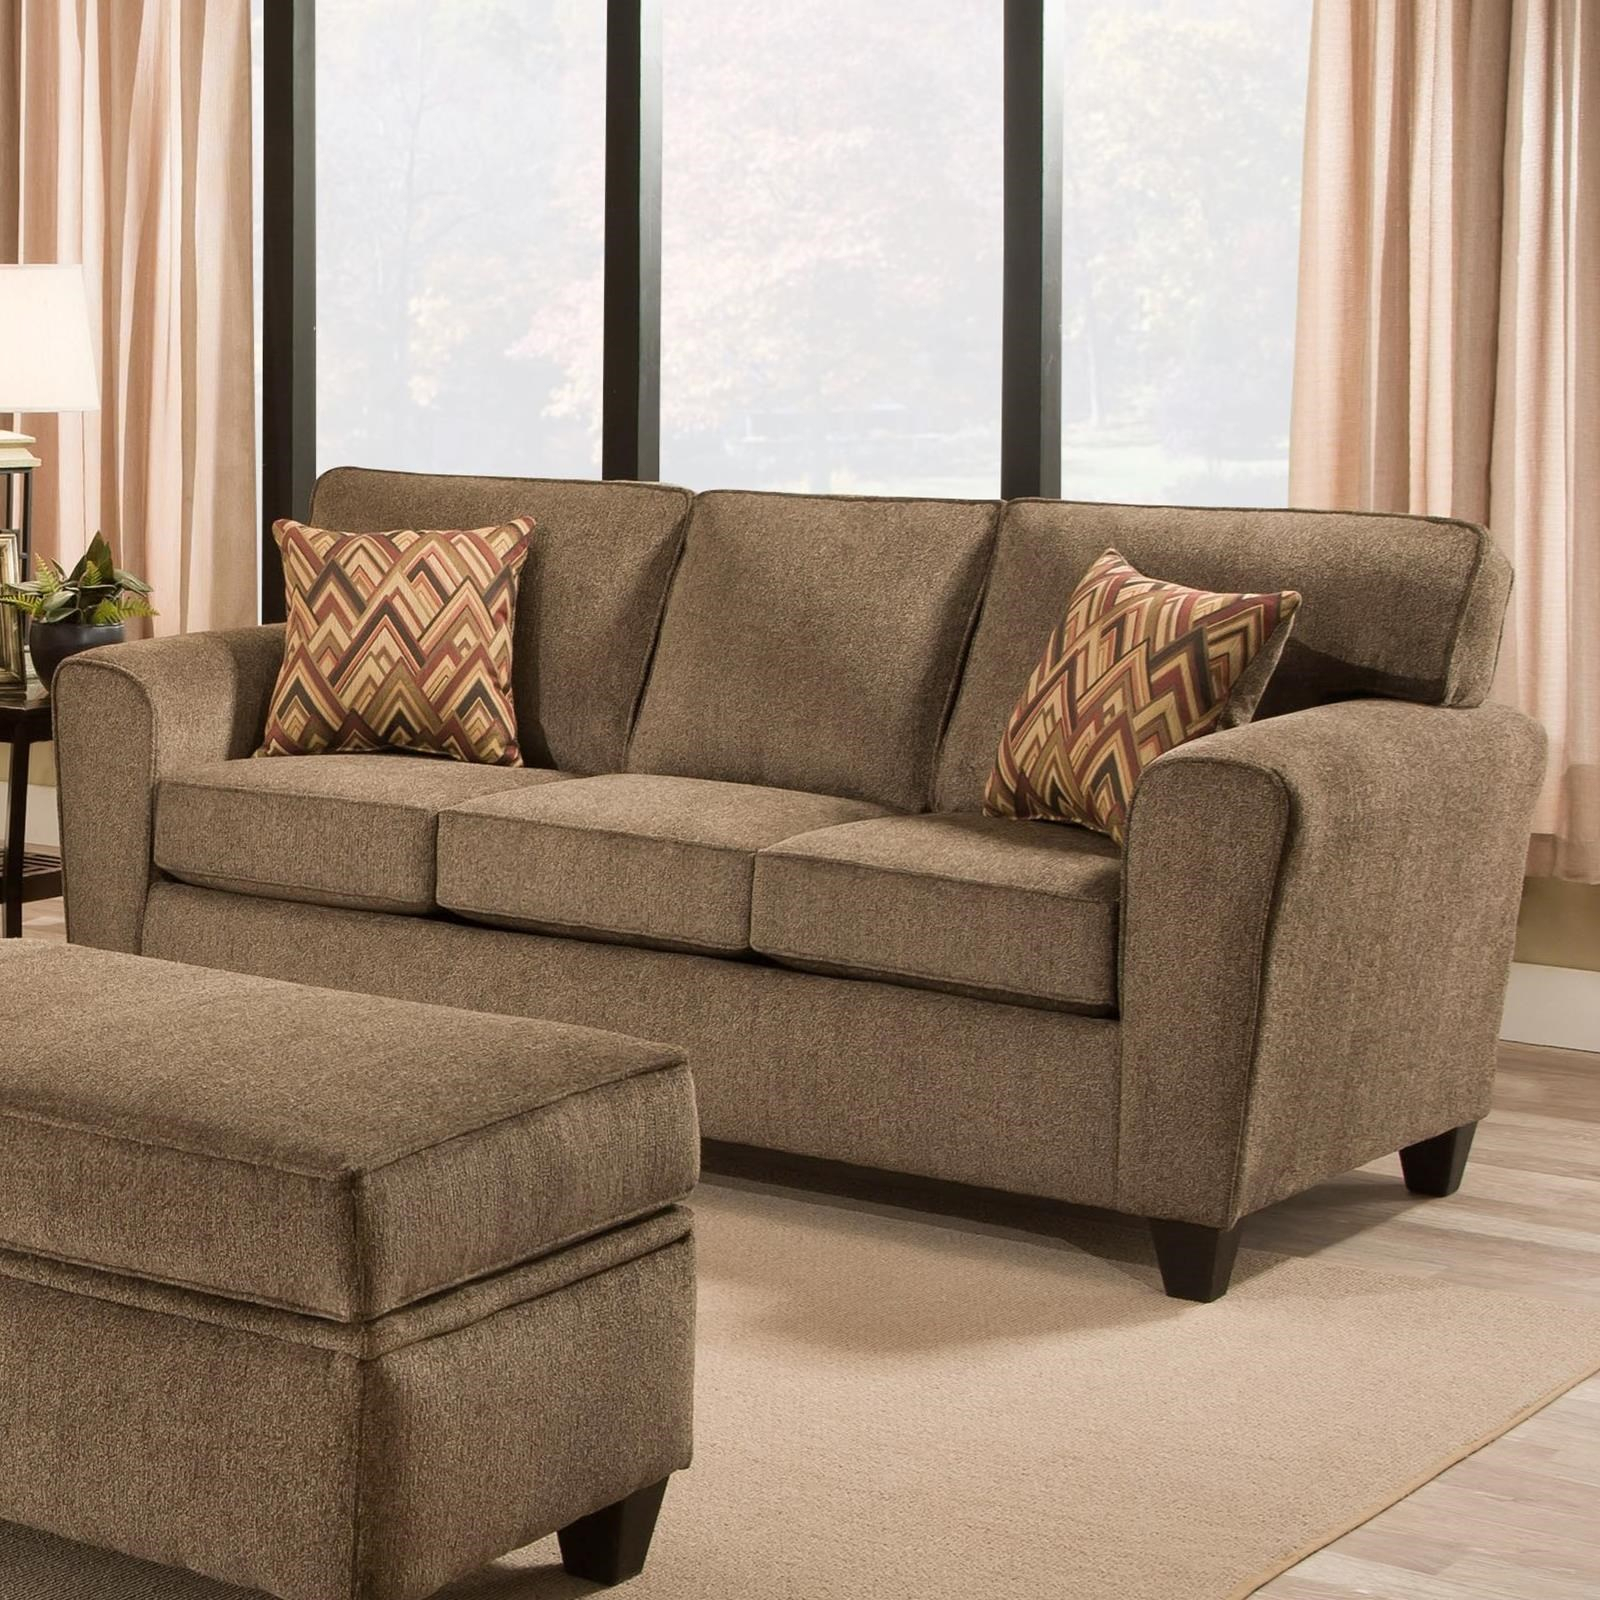 Peak Living 3100 Sofa With Casual Style | Prime Brothers In Casual Sofas And Chairs (View 12 of 15)